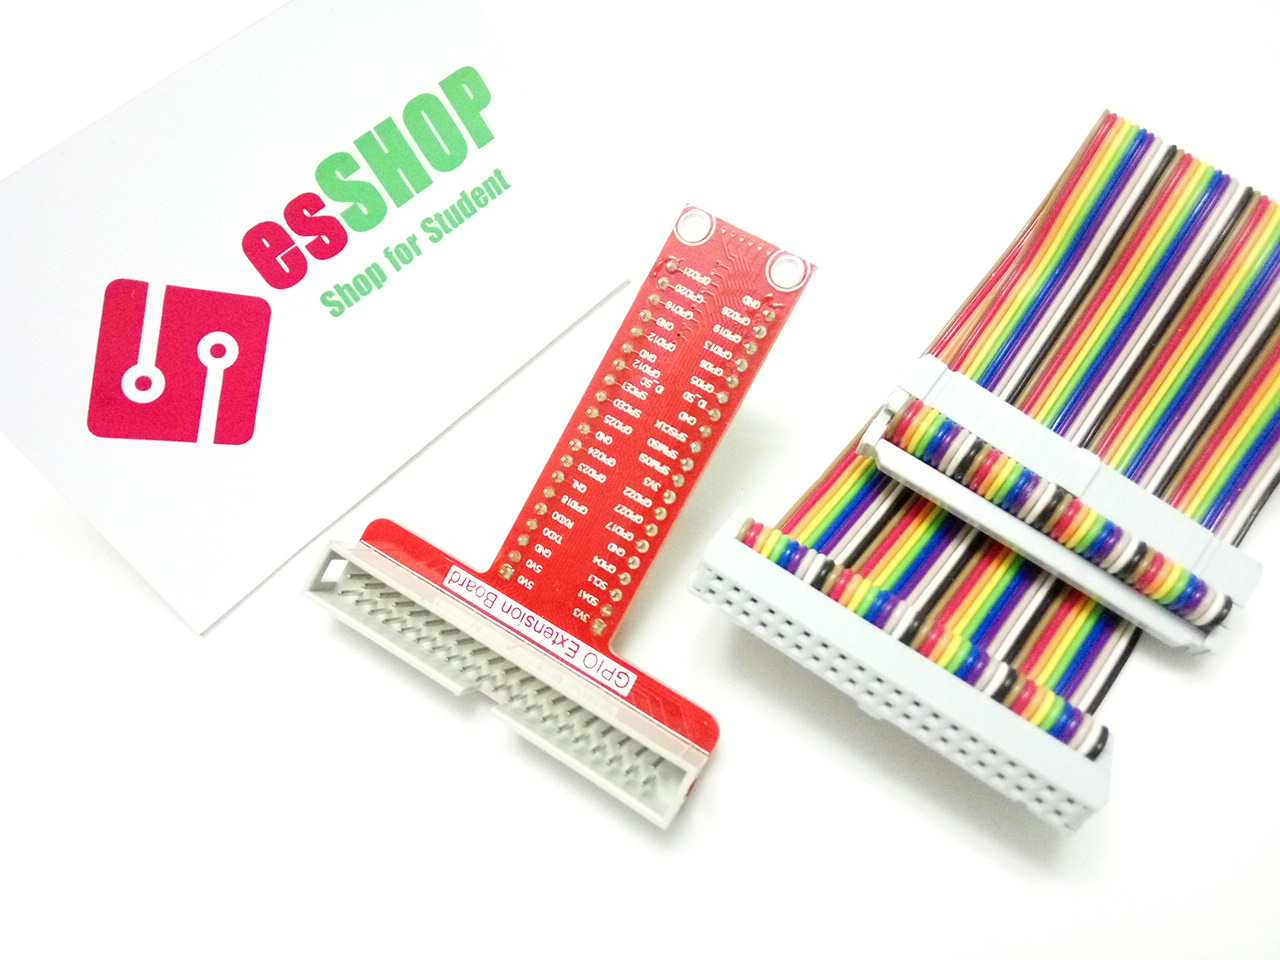 Raspberry Cáp GPIO 40 Pin